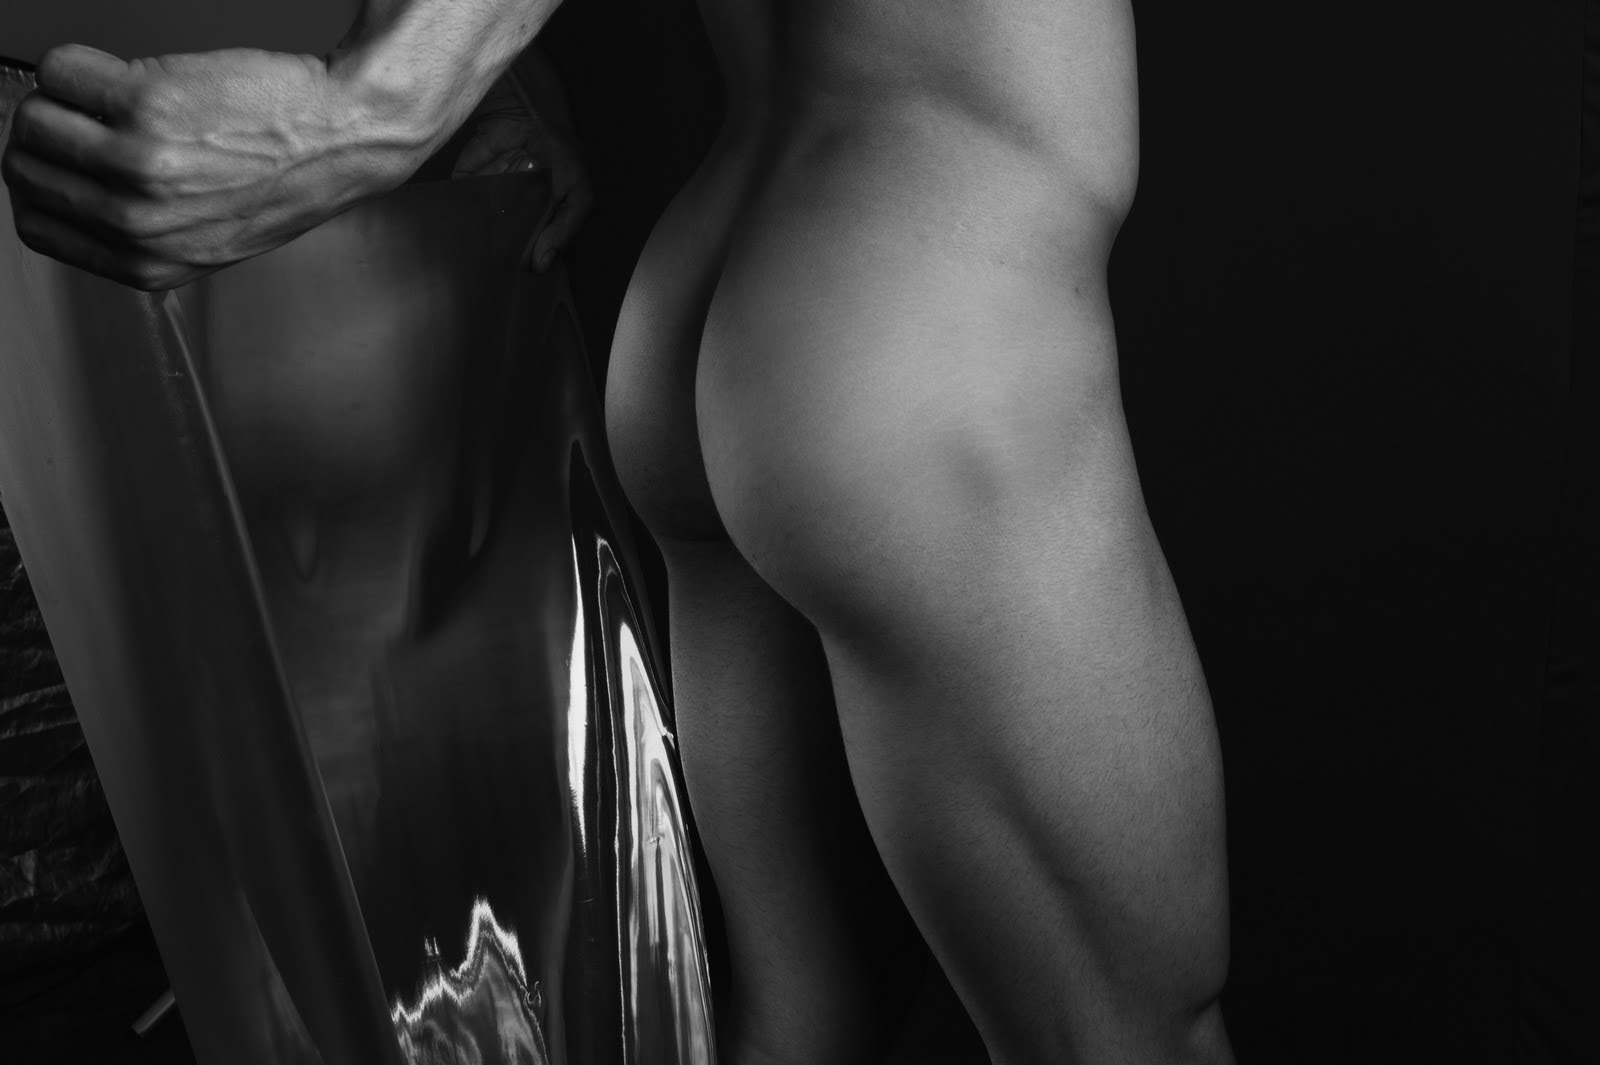 MenS SanA in CorporE SanO (IV), by Marcelo Magnani ft Tiago Volpato (NSFW).